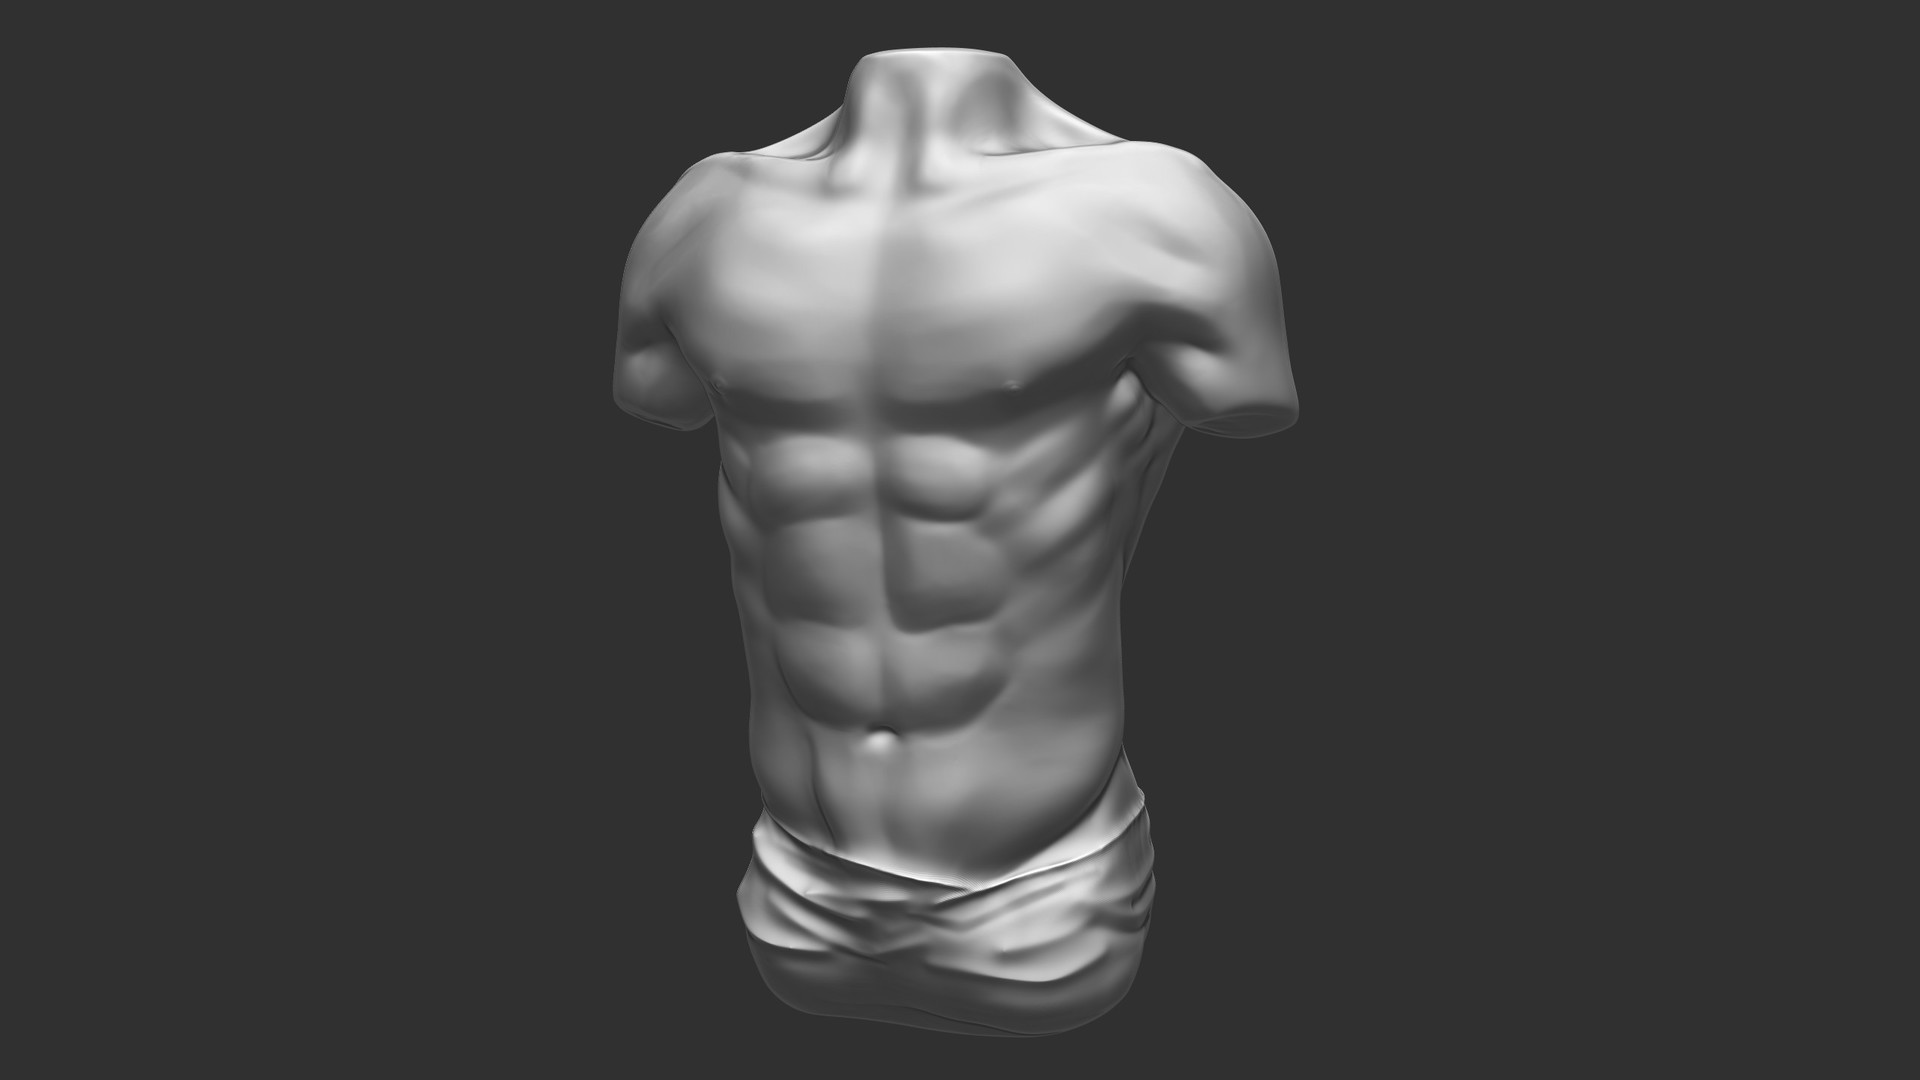 Bruno de maeyer male torso white material